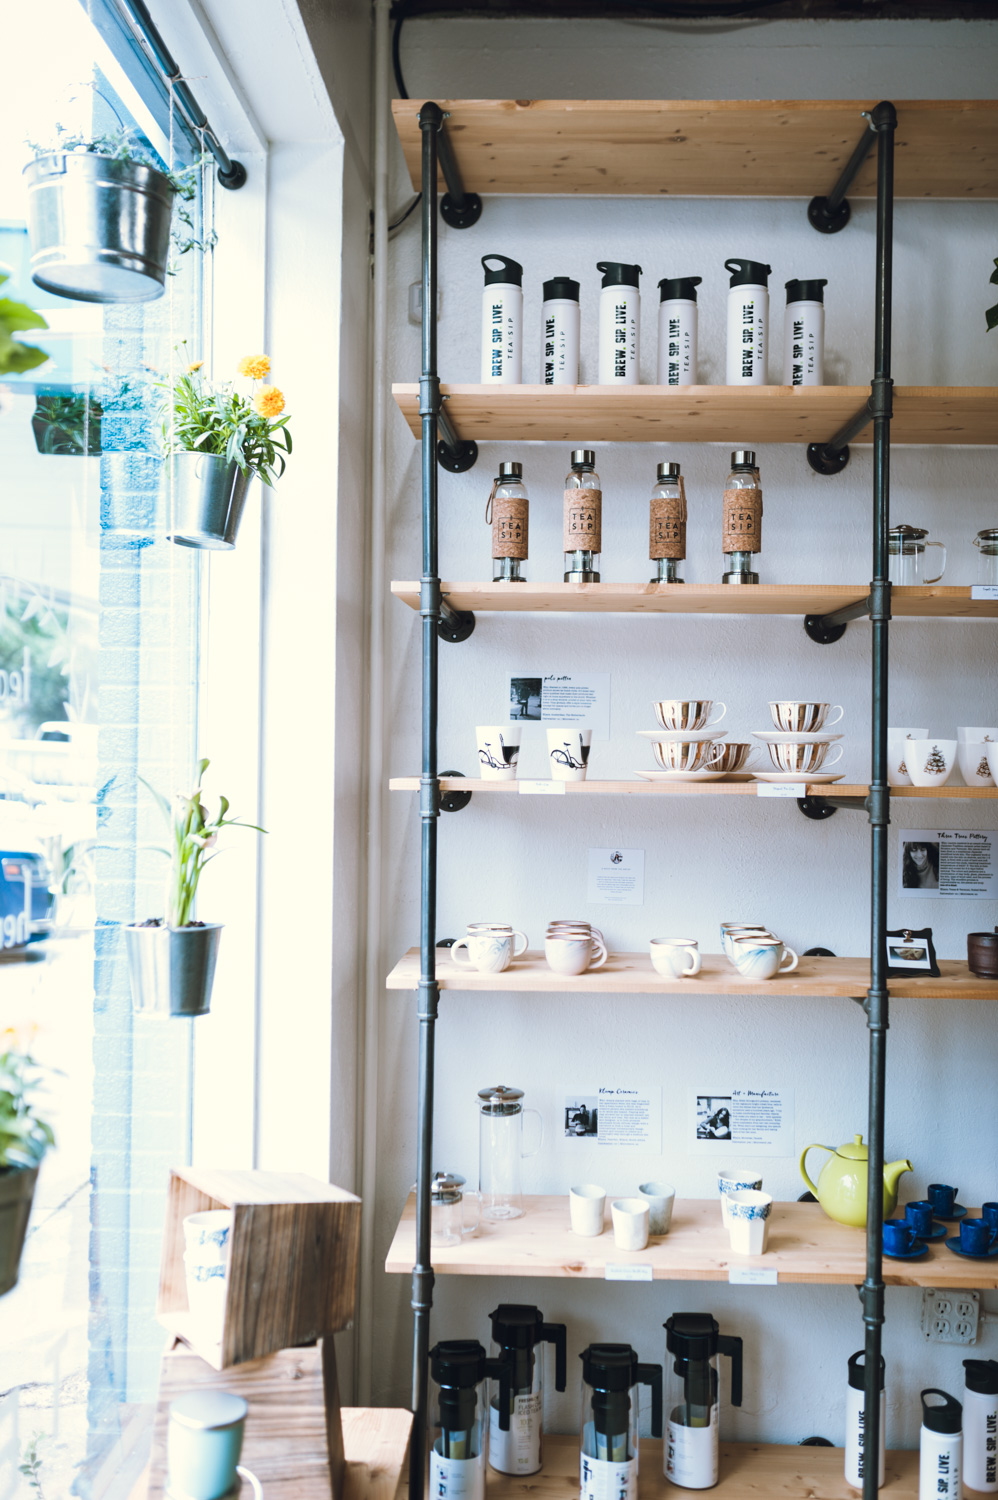 Tea Sip merchandise and ceramics